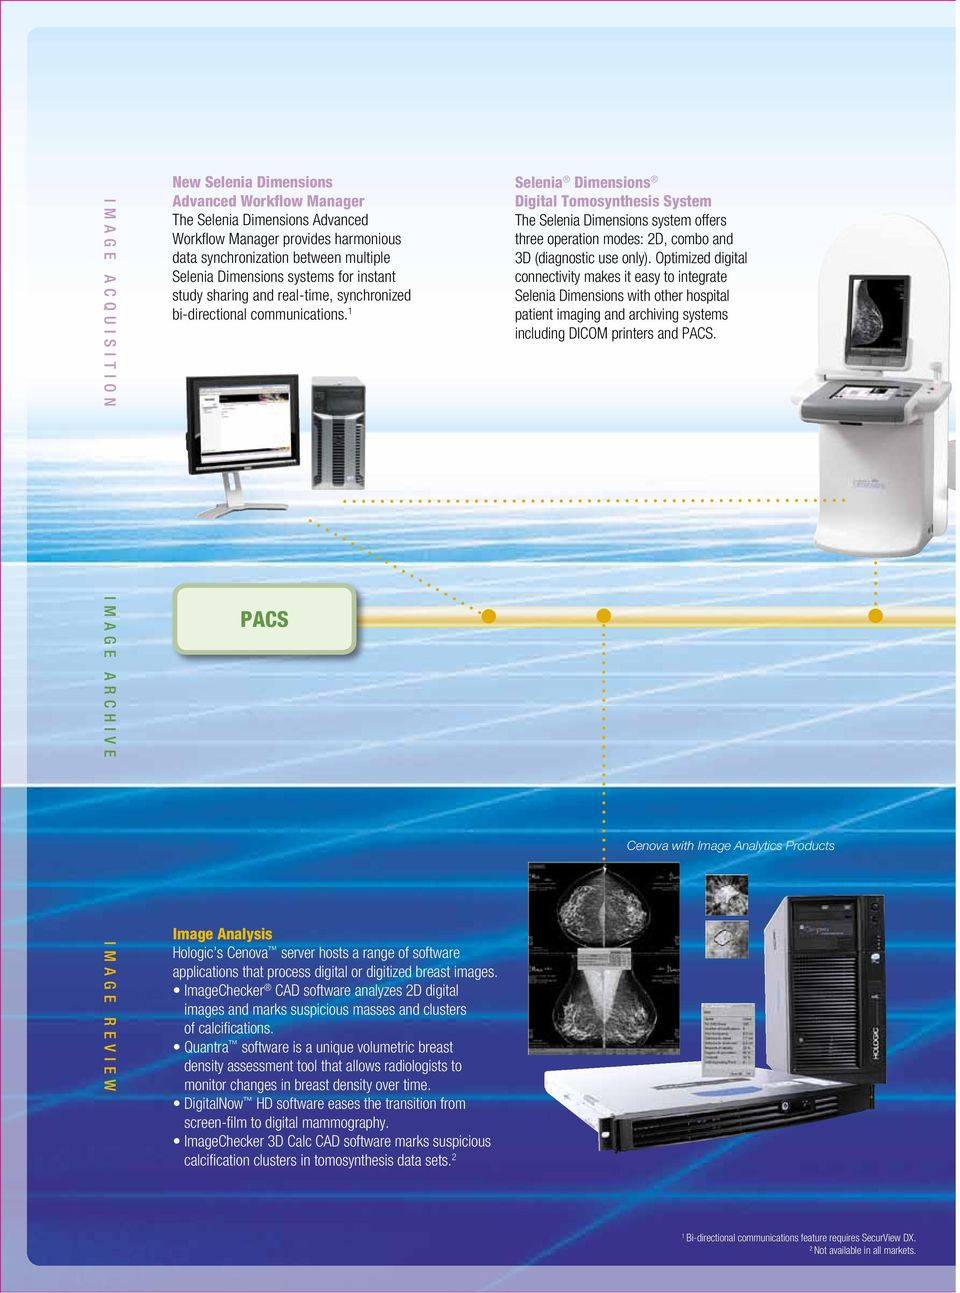 1 Selenia Dimensions Digital Tomosynthesis System The Selenia Dimensions system offers three operation modes: 2D, combo and 3D (diagnostic use only).